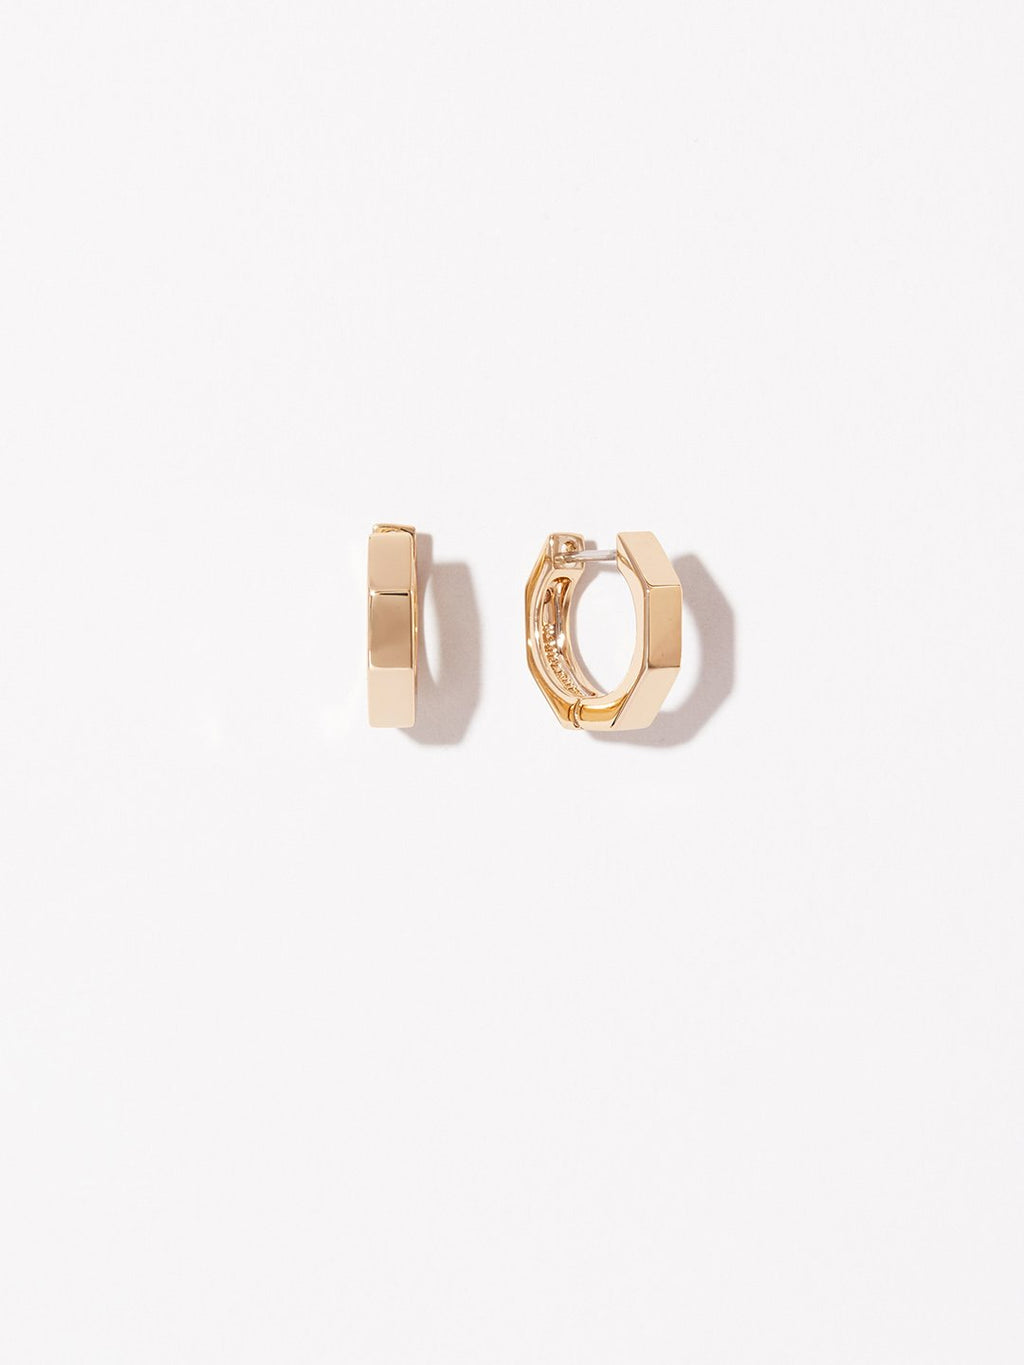 Hardware Hoop Earrings - Octo Mini